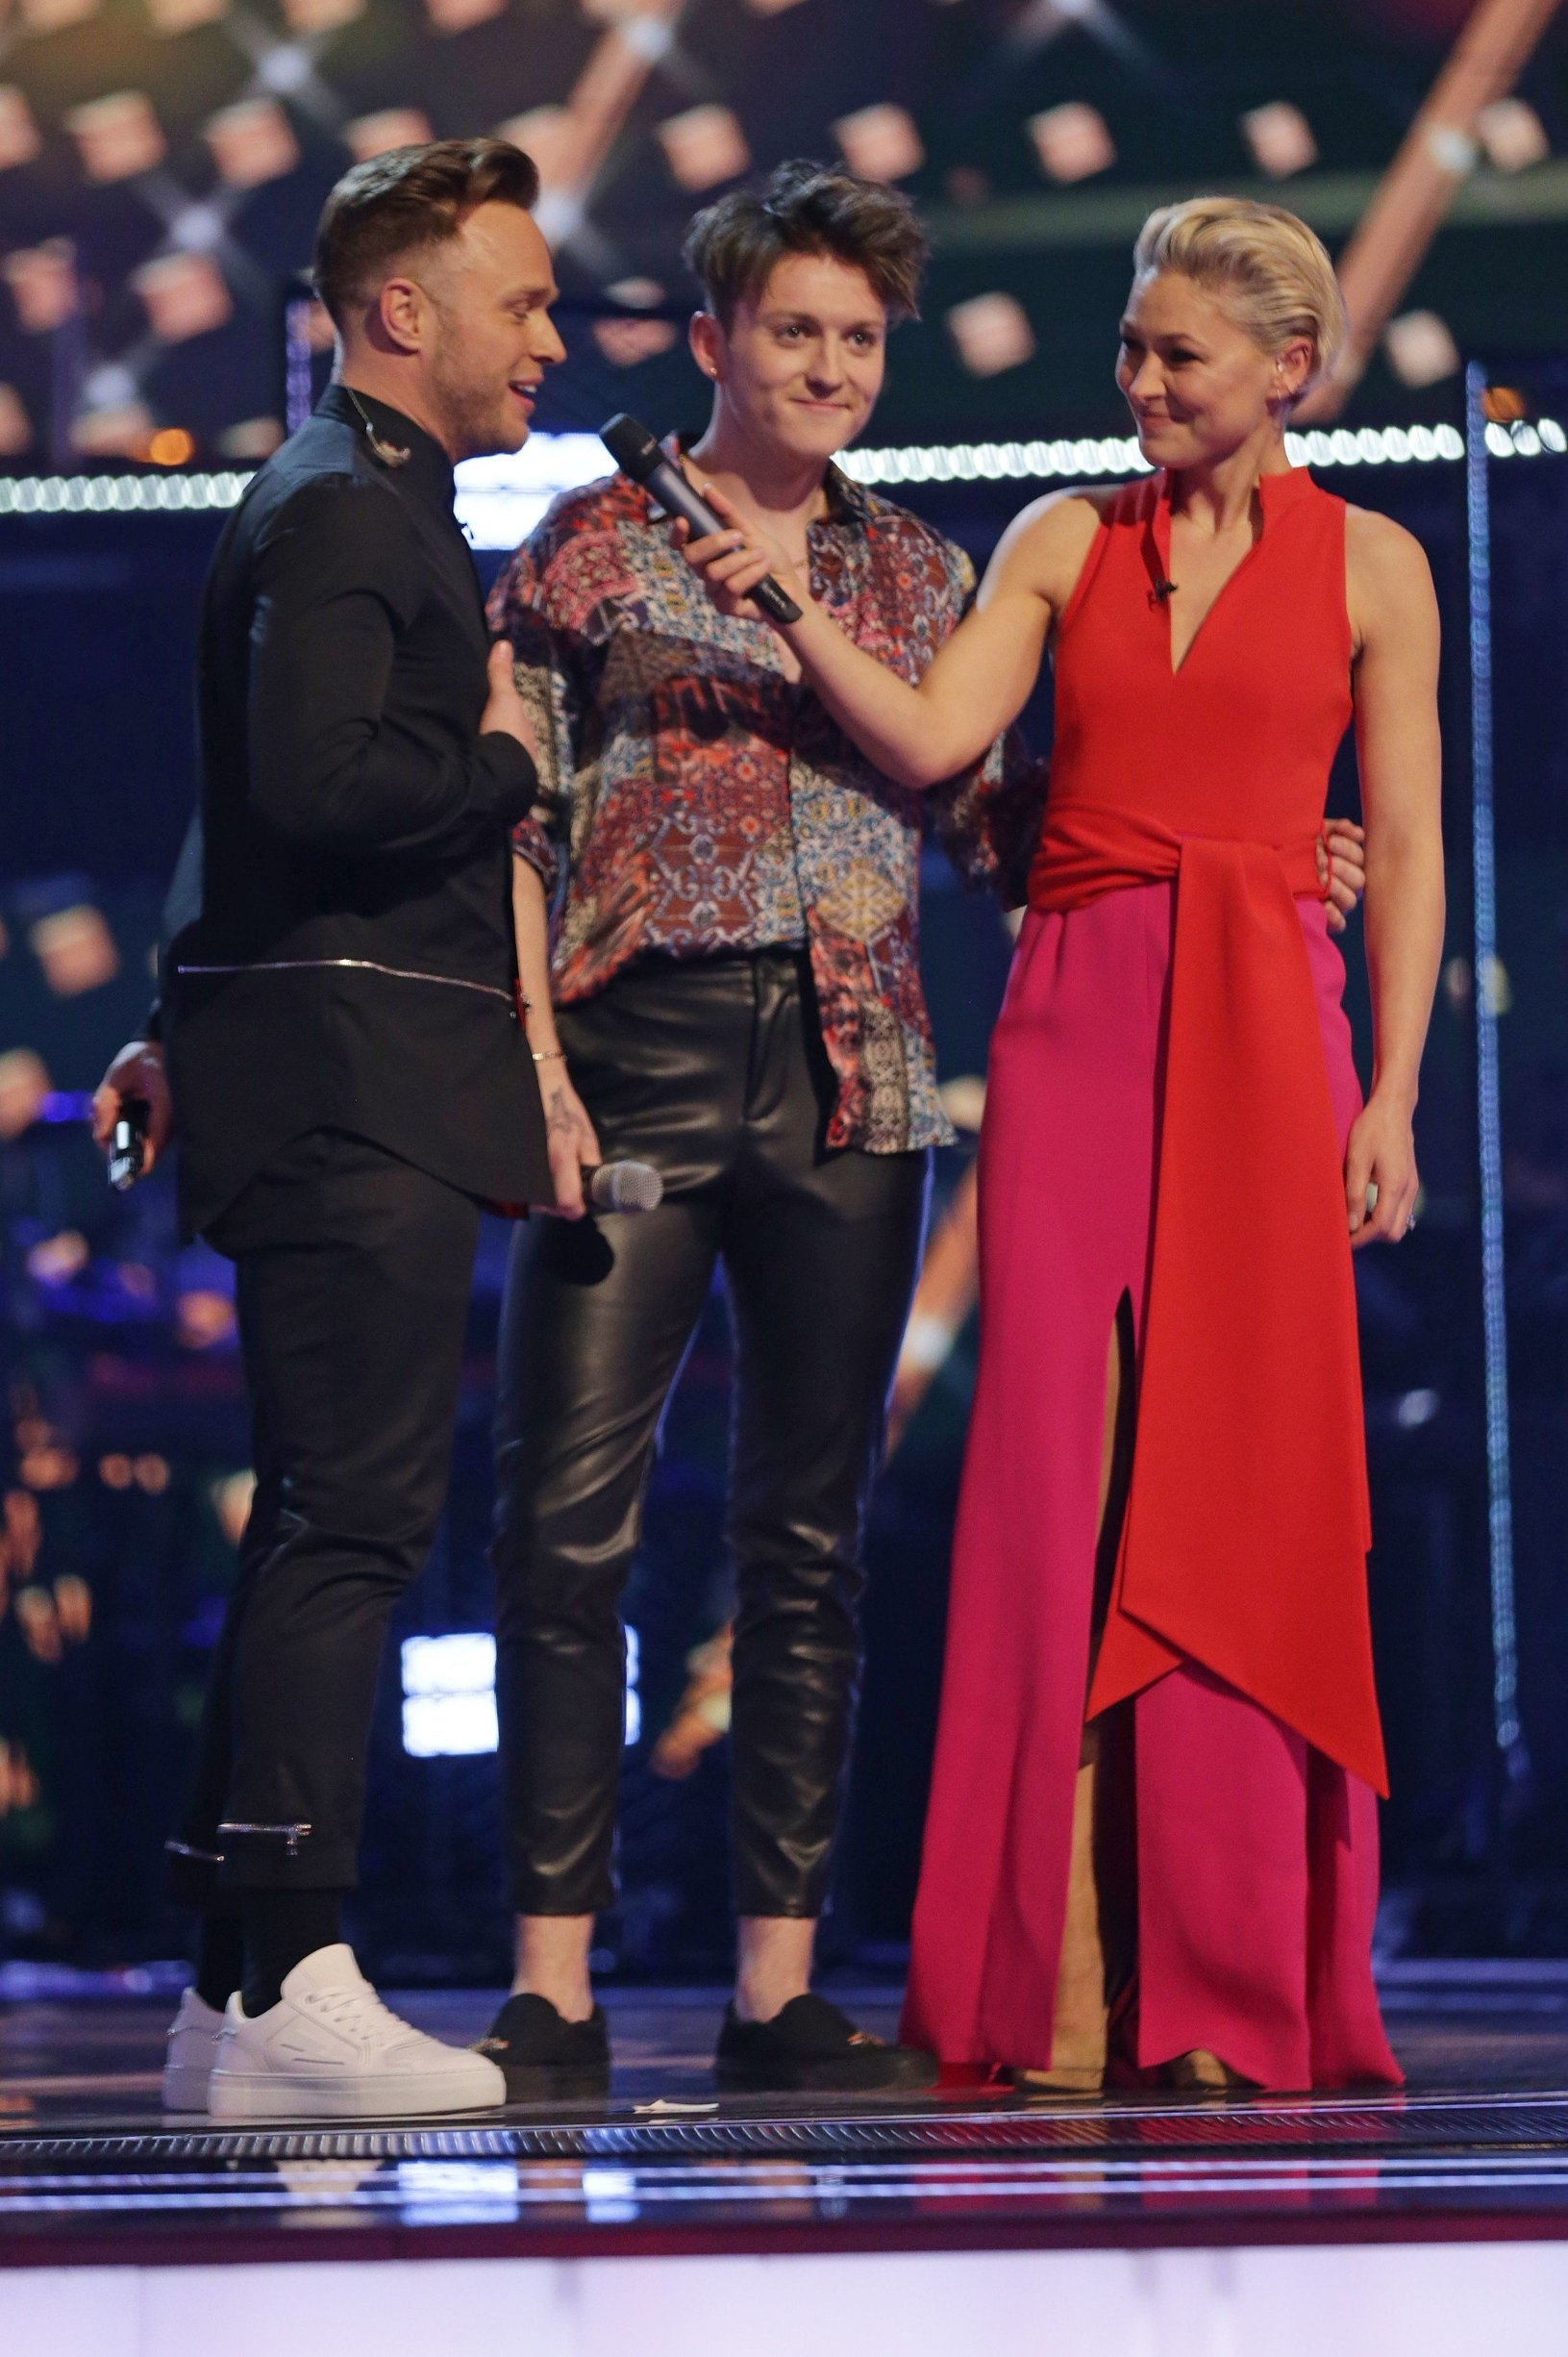 Olly Murs, Jimmy Balito and Emma Willis 'The Voice UK' TV Show, Series 3, Episode 14, London, UK - 06 Apr 2019, Image: 424757696, License: Rights-managed, Restrictions: Editorial use only, Model Release: no, Credit line: Profimedia, TEMP Rex Features